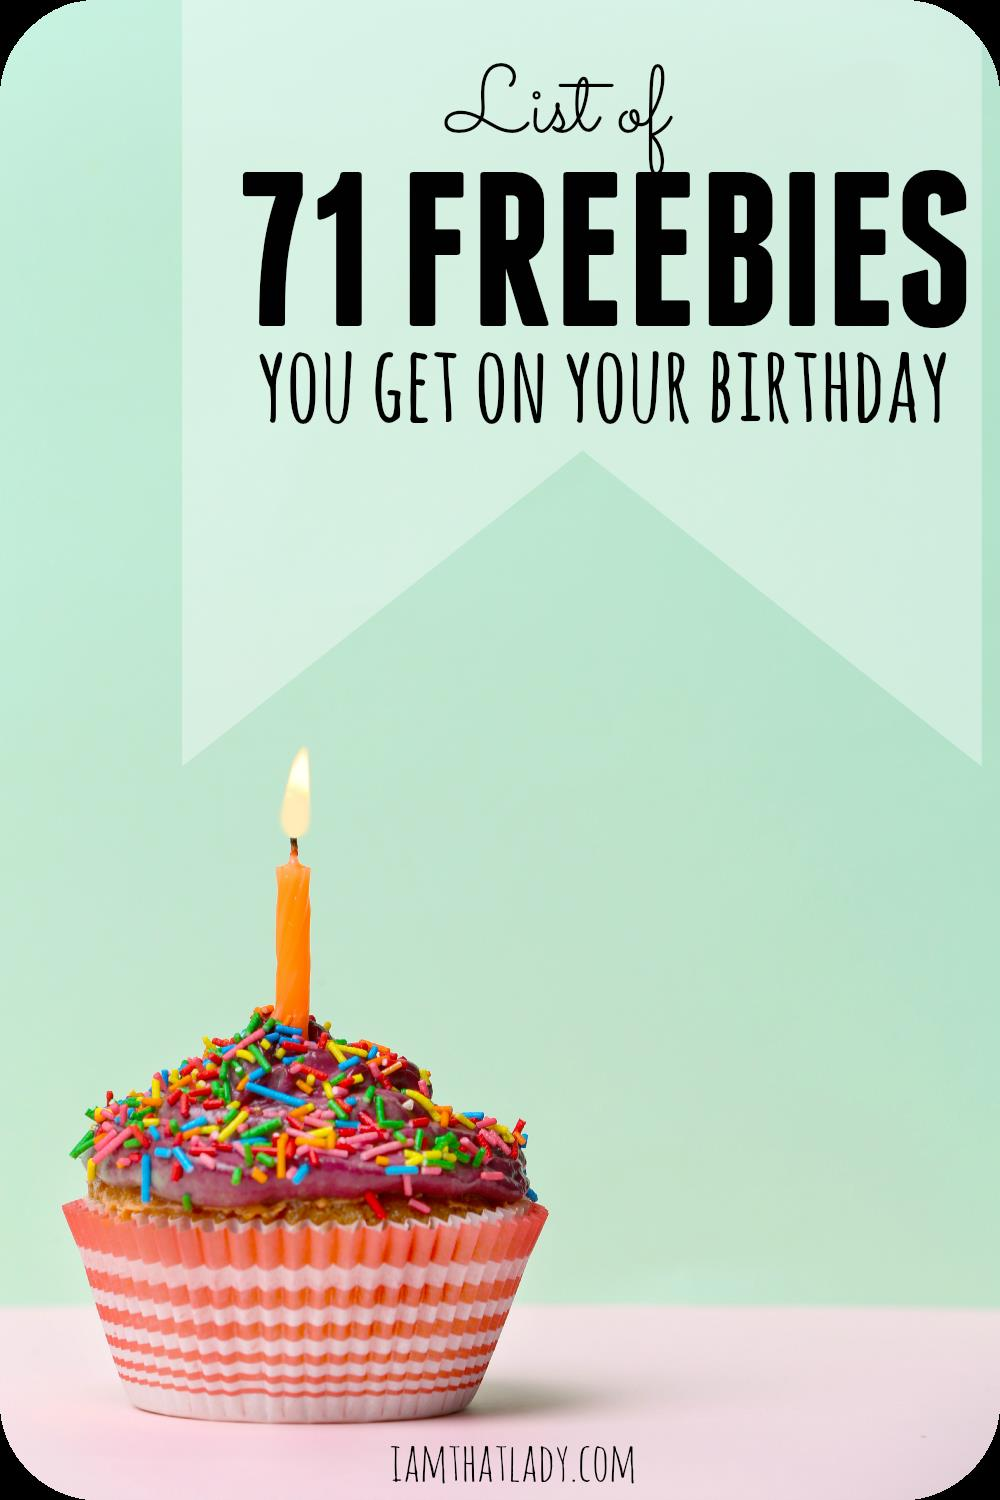 birthday emails to sign up for ; 2743d4cb31df251339f027f53c268425